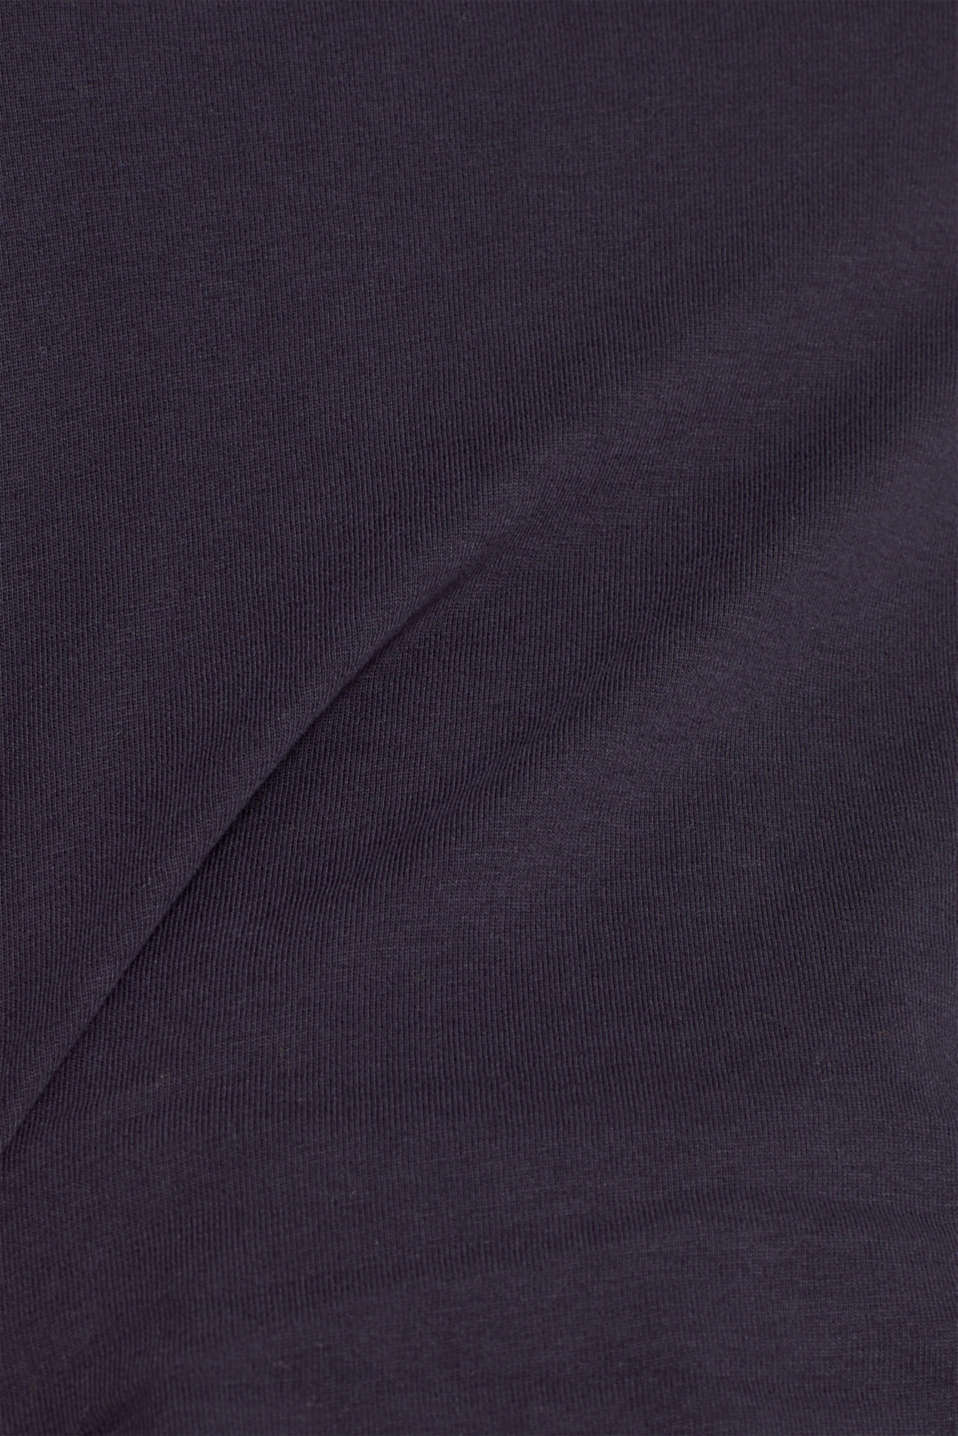 Long sleeve top in a basic design, 100% cotton, NAVY, detail image number 3